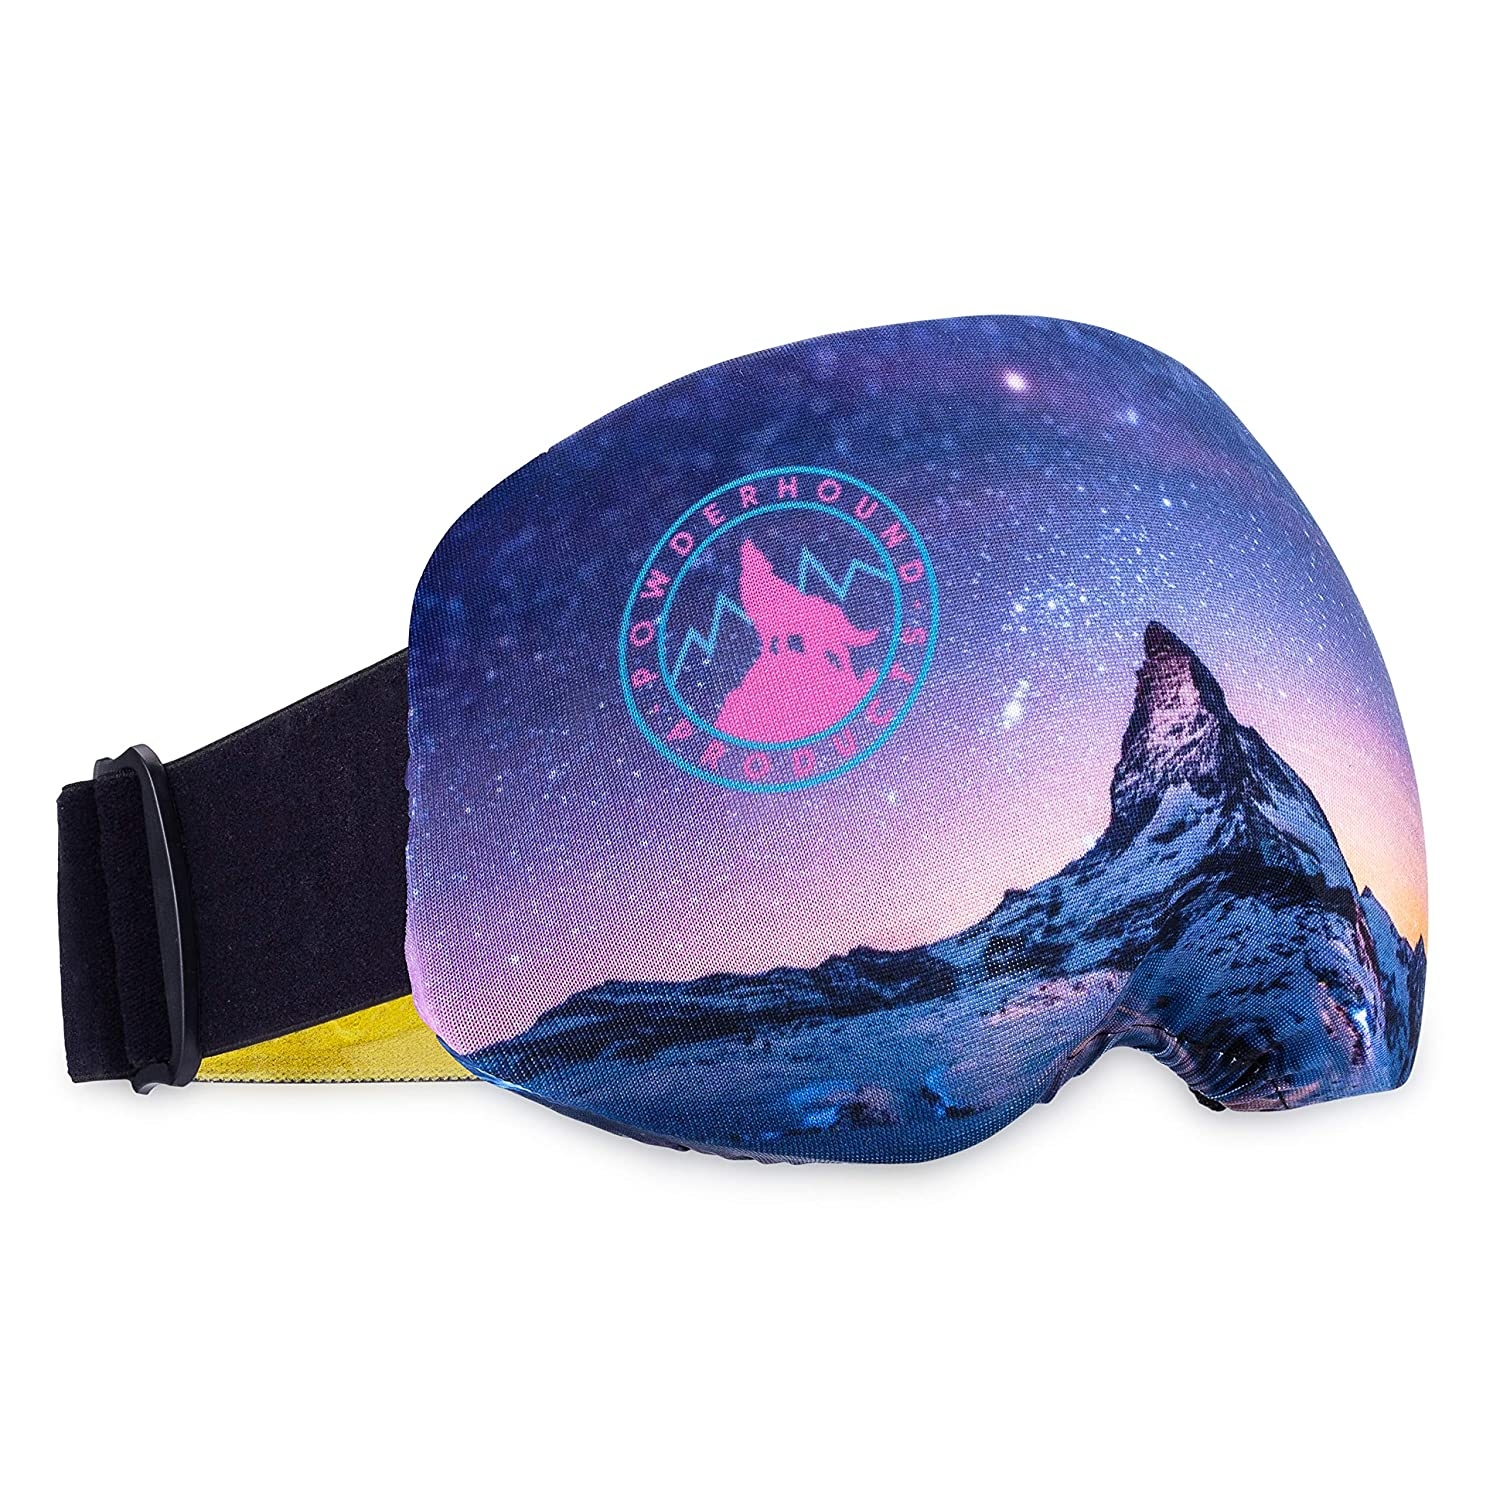 SKI Snowboard Goggle Cover Sleeve Lens Scratch Dust Protection for ...